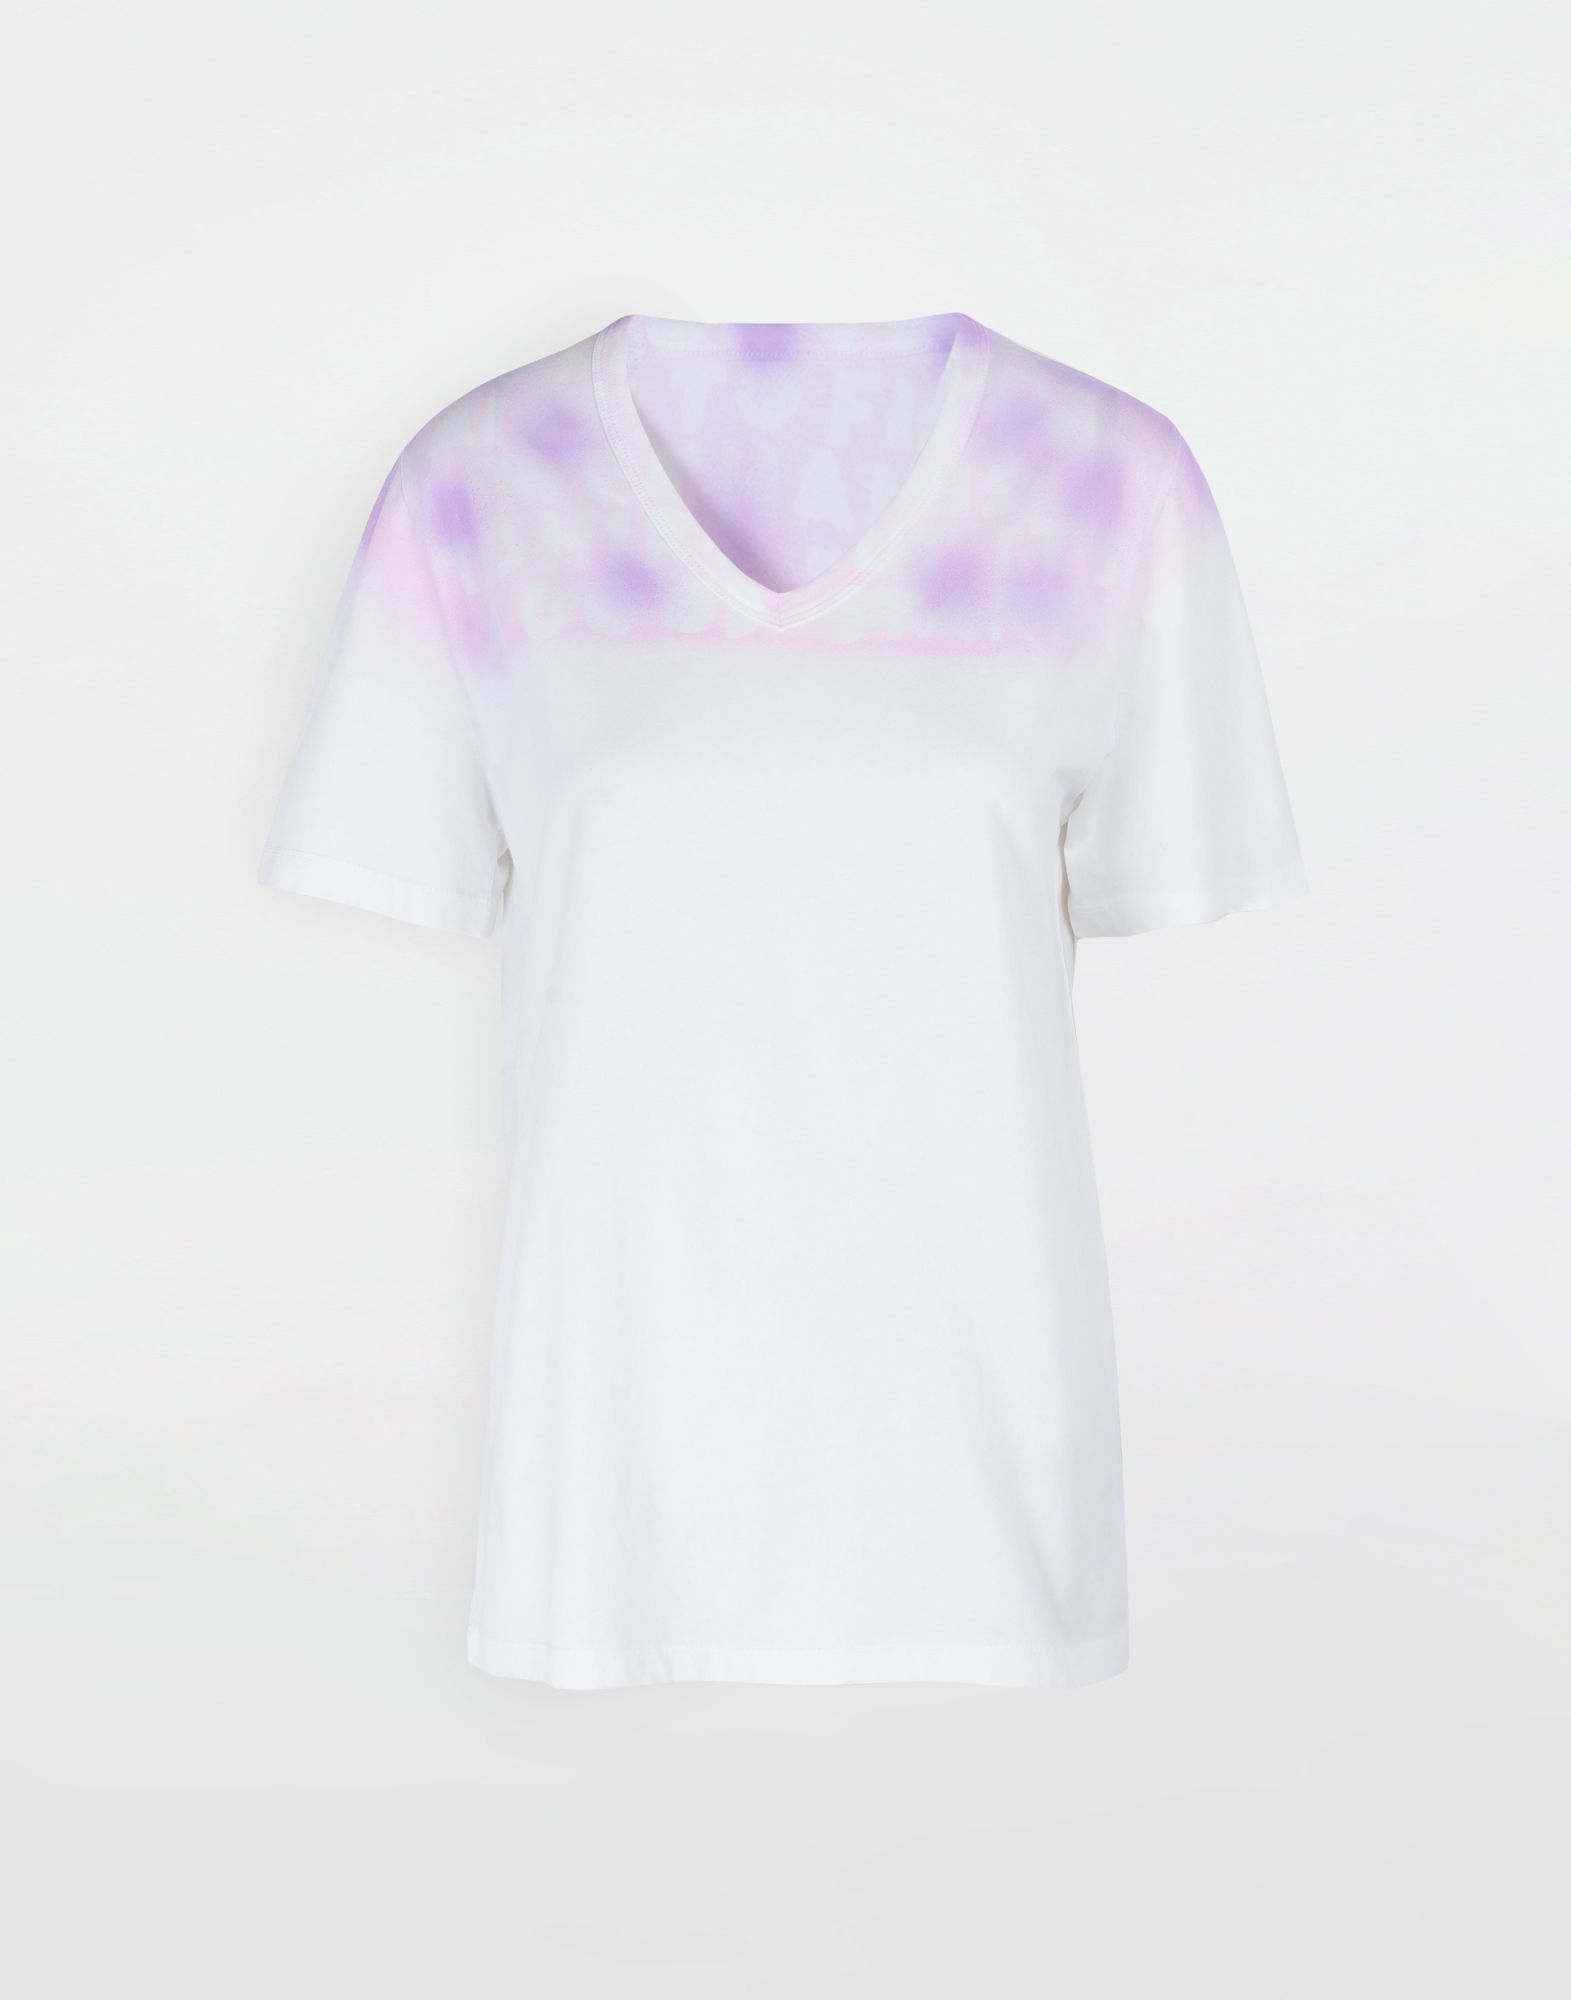 MM6 MAISON MARGIELA AIDS Charity tie-dye T-shirt Short sleeve t-shirt Woman f